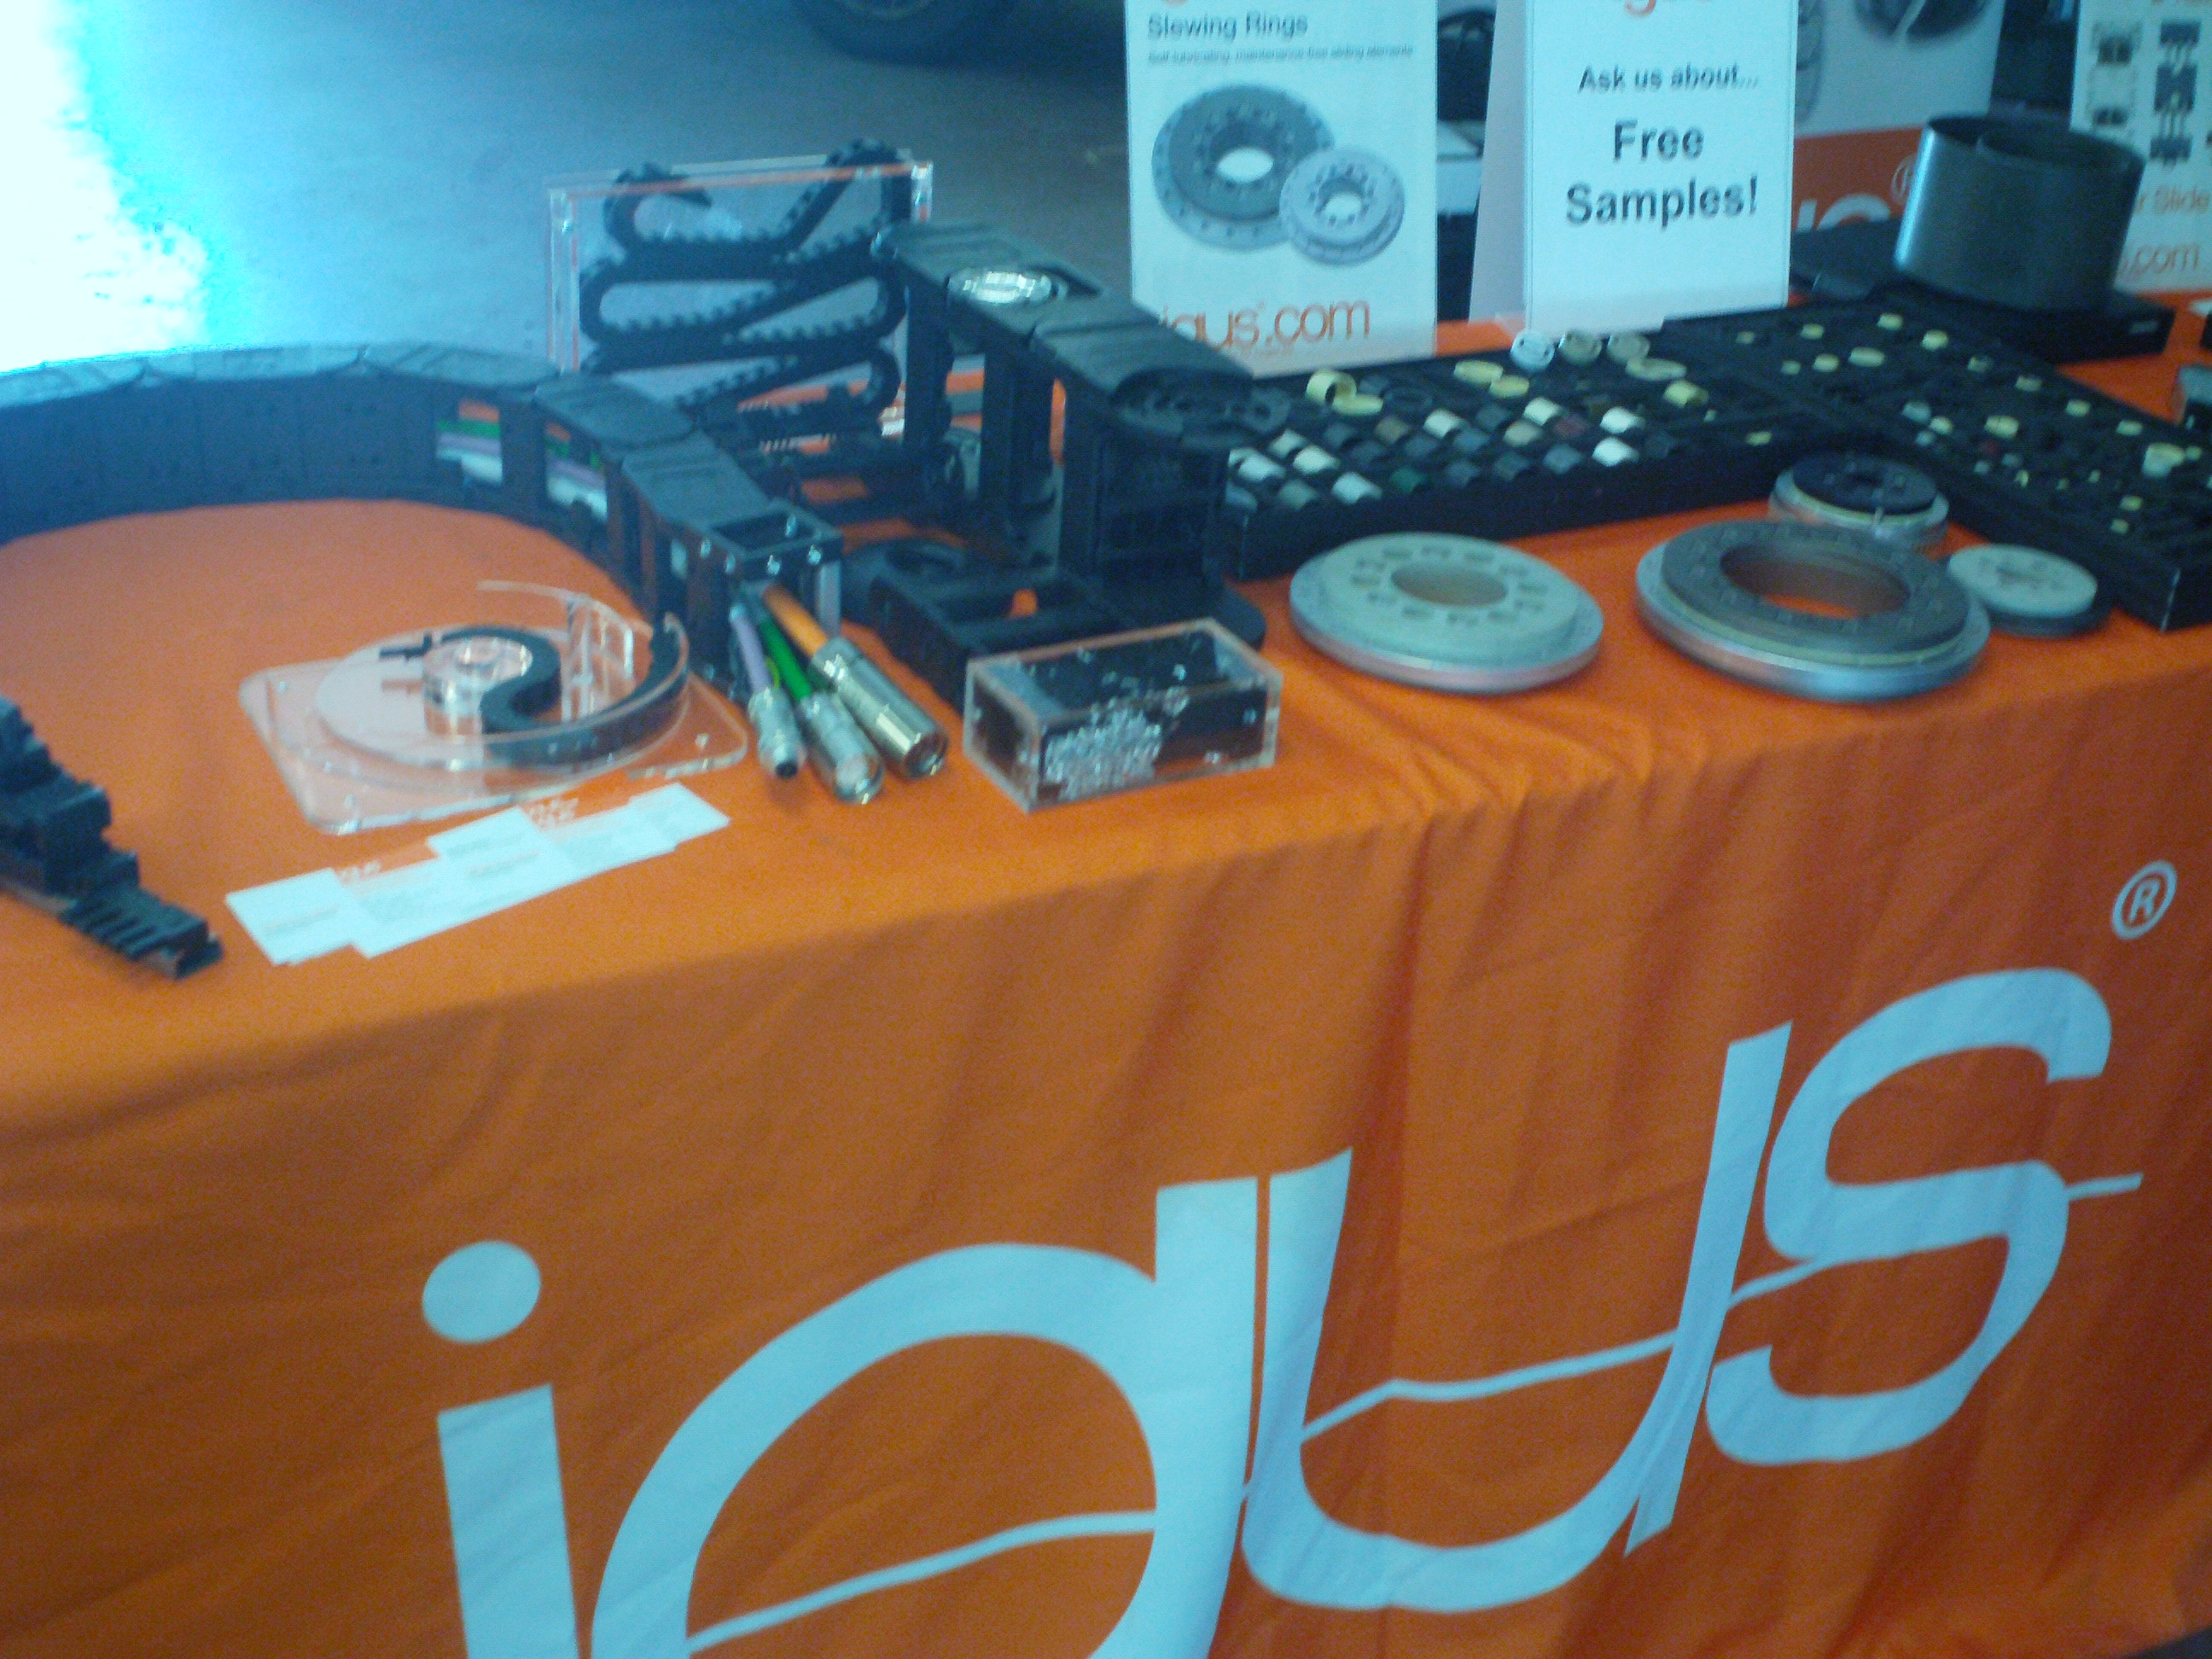 Igus wire and hose management improvements for robotics and shop